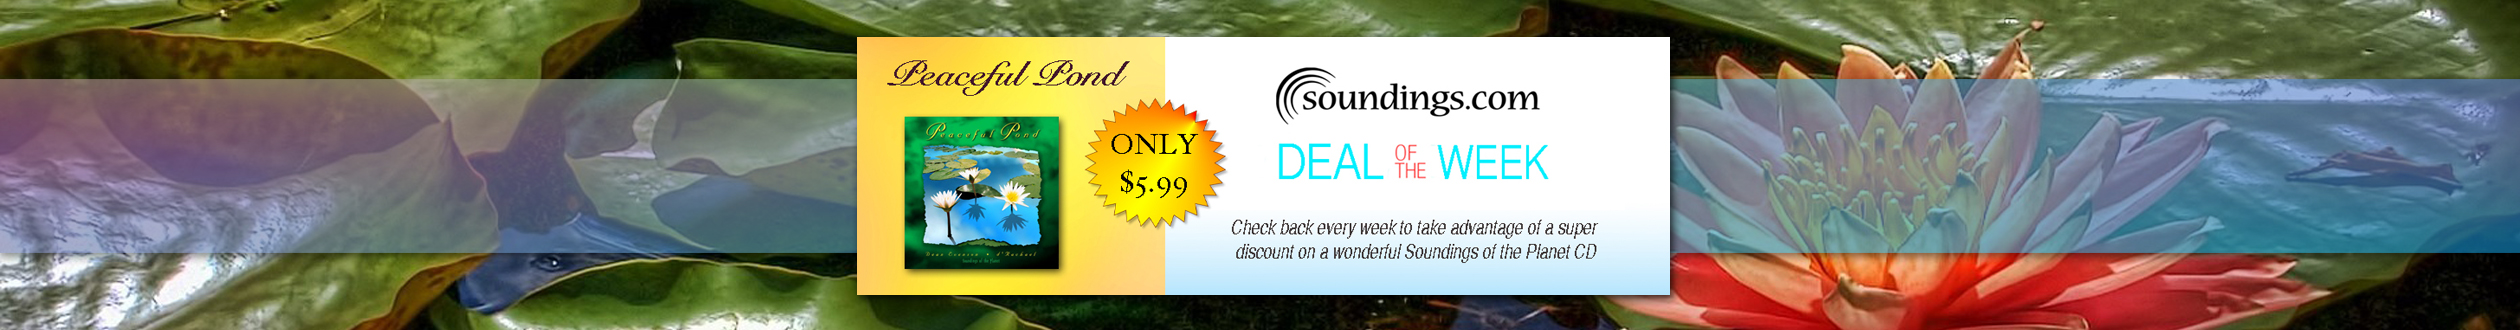 Deal-of-the-Week-Peaceful-Pond-Full-Slider